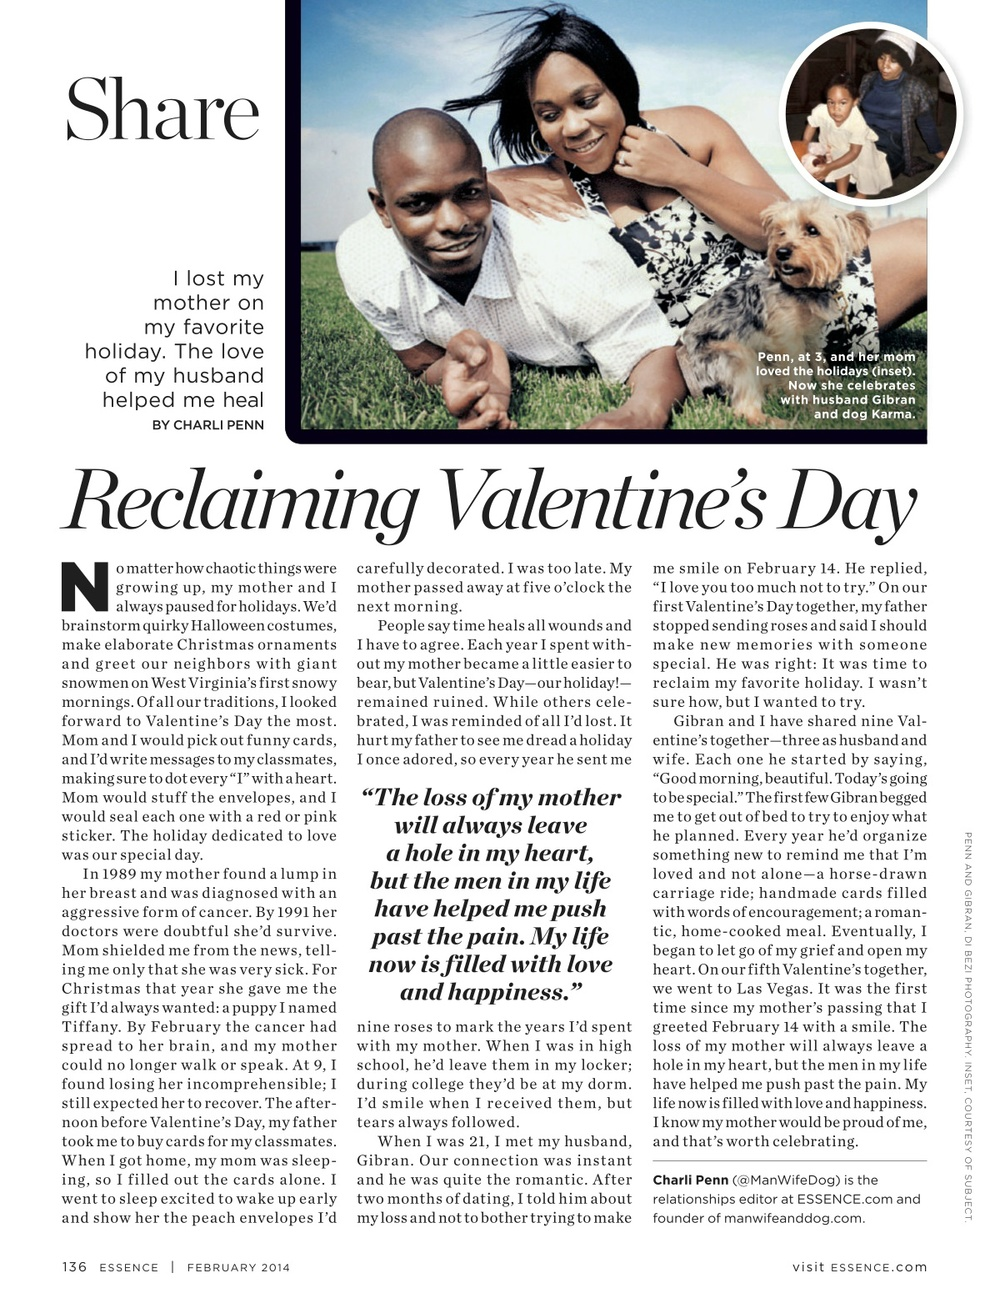 Reclaiming Valentine's Day, ESSENCE Feb. 2014